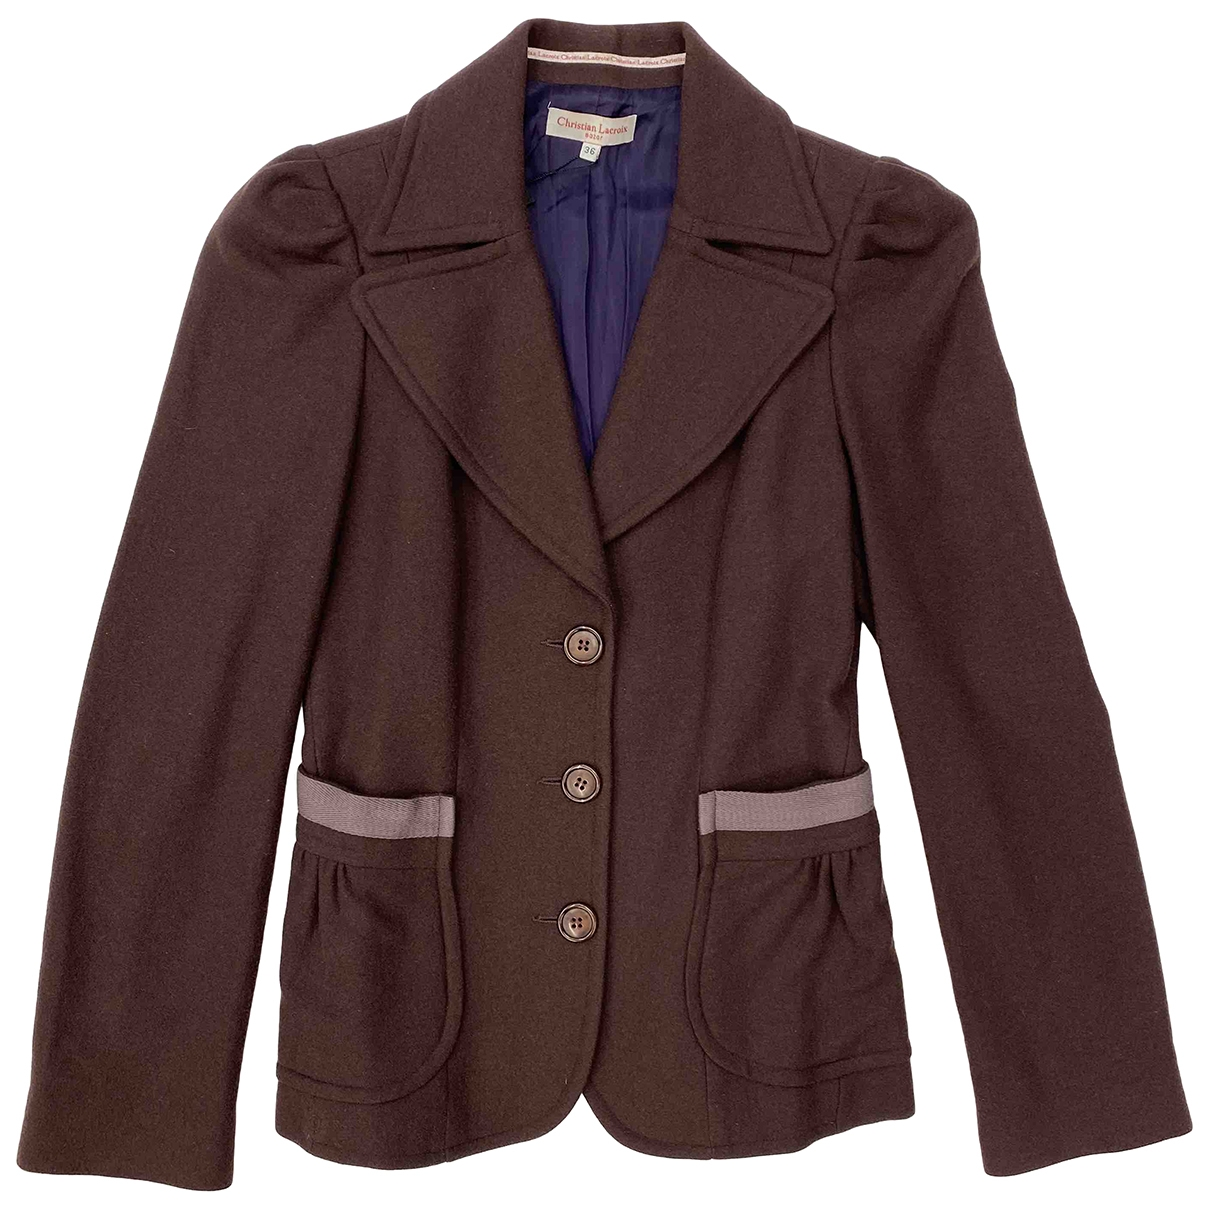 Christian Lacroix \N Burgundy Wool jacket for Women 36 FR